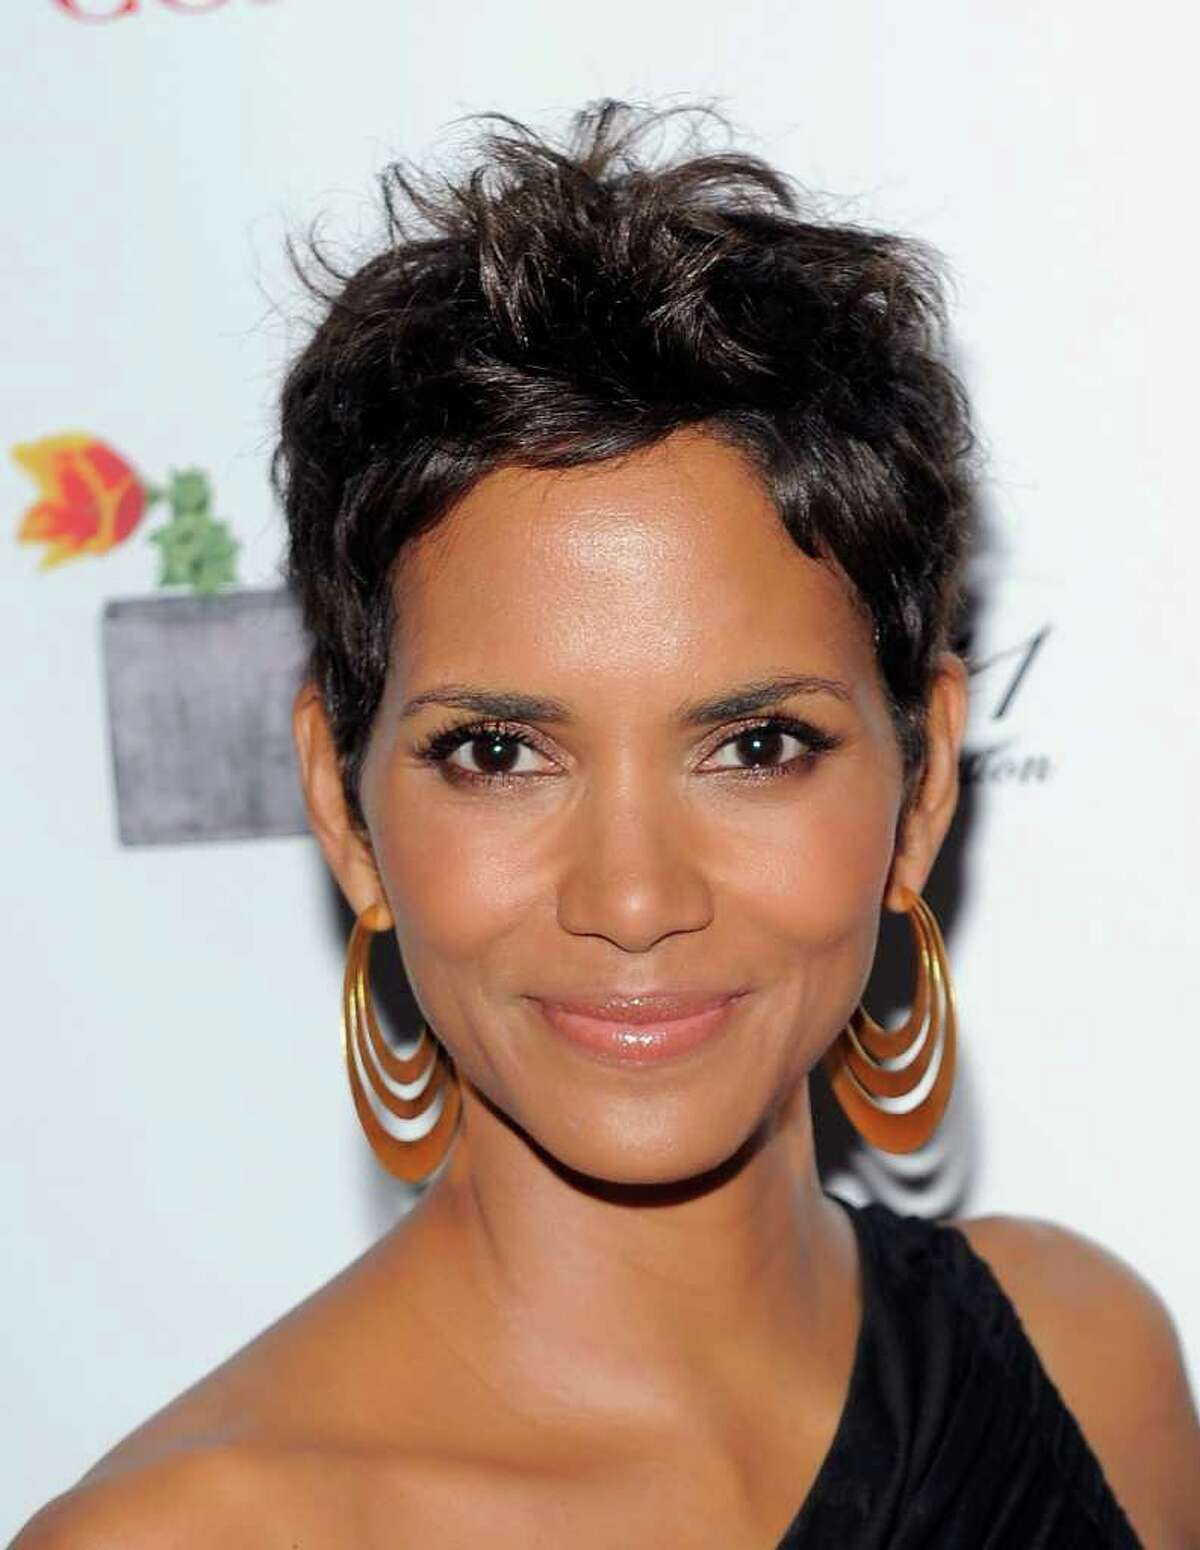 Actress Halle Berry poses backstage at the 2011 FiFi Awards at The Tent at Lincoln Center in New York City.